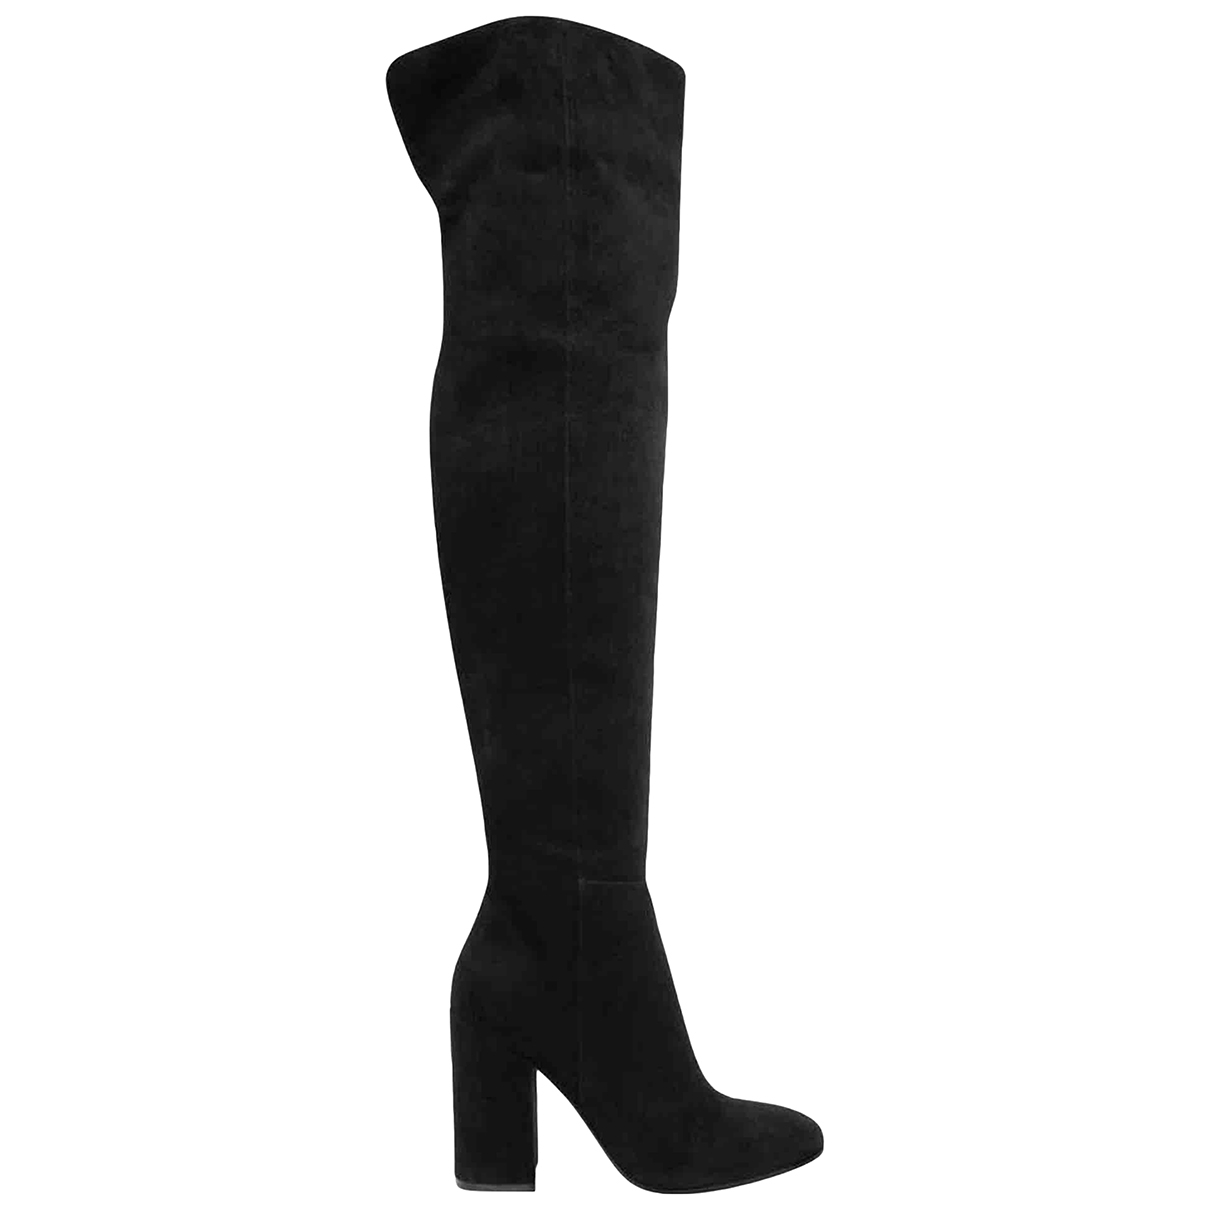 Gianvito Rossi \N Black Suede Boots for Women 39 EU